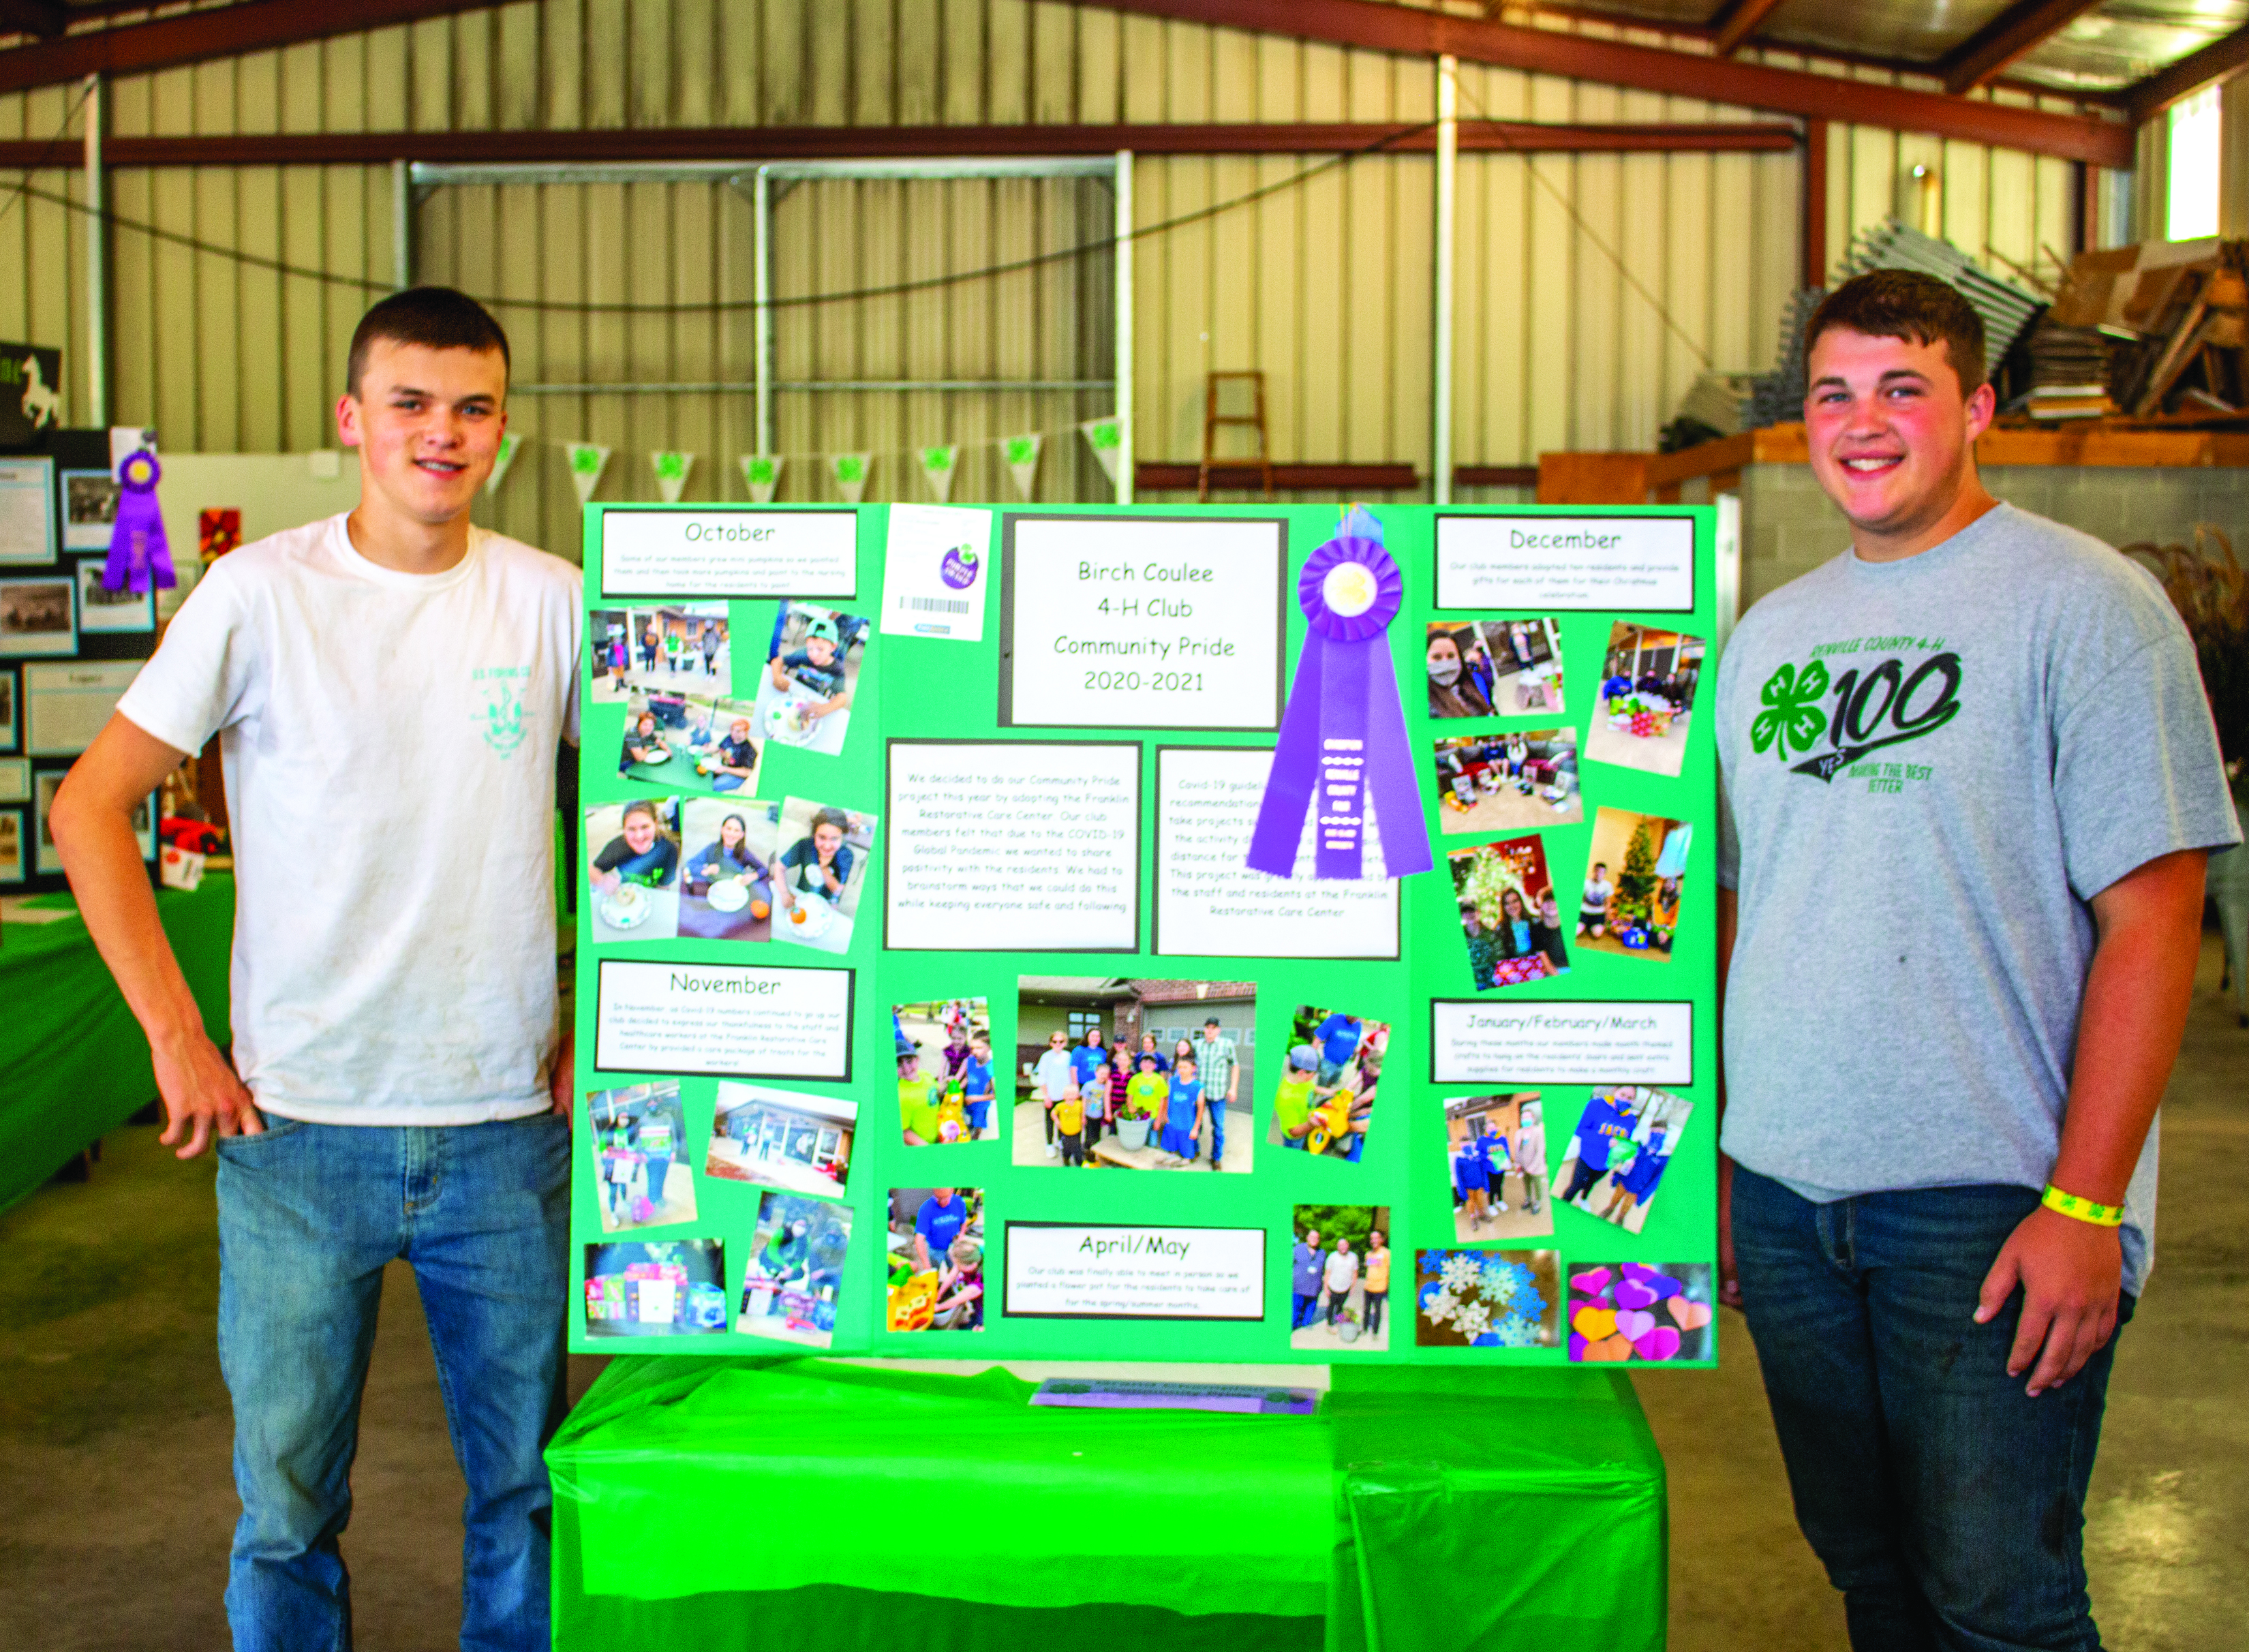 This year, the Birch Coulee 4-H Club earned Grand Champion with their Community Pride project, which involved sharing their time and talents with the residents of the Franklin Restorative Care Center. Pictured are members of the club, Andrew Revier and Keegan Lorang.  (Staff photos by Paul Zaid.)